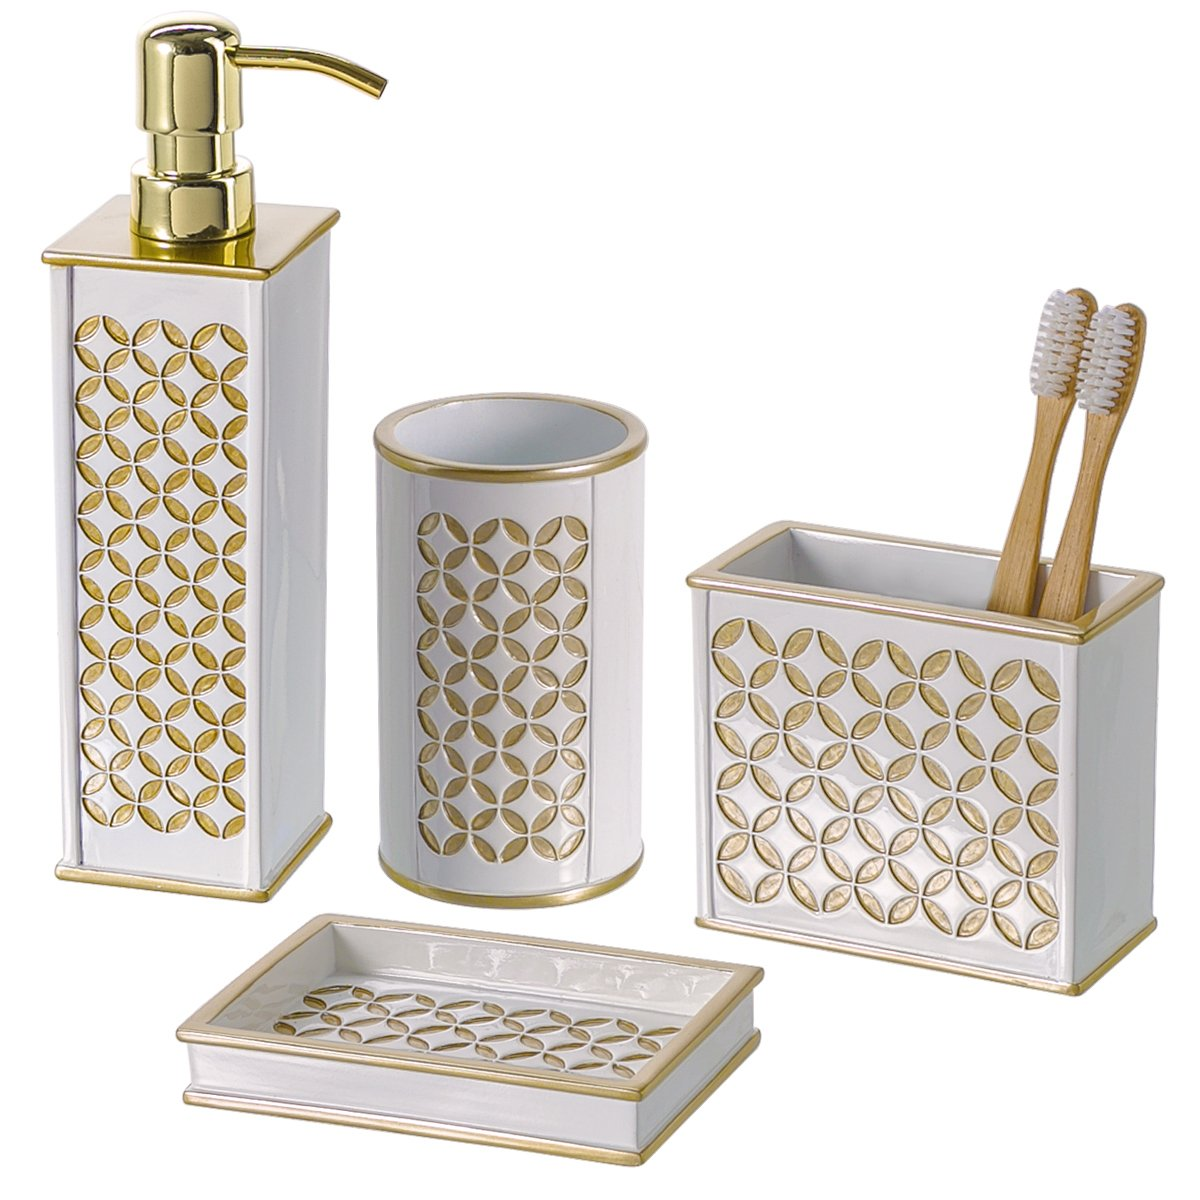 Amazon.com: Diamond Lattice 4Pc Bath Accessory Sets  Decorative Lotion  Dispenser/Dish/ Tumbler/Toothbrush Holder  Durable Accessories Set  Best  Bathroom ...